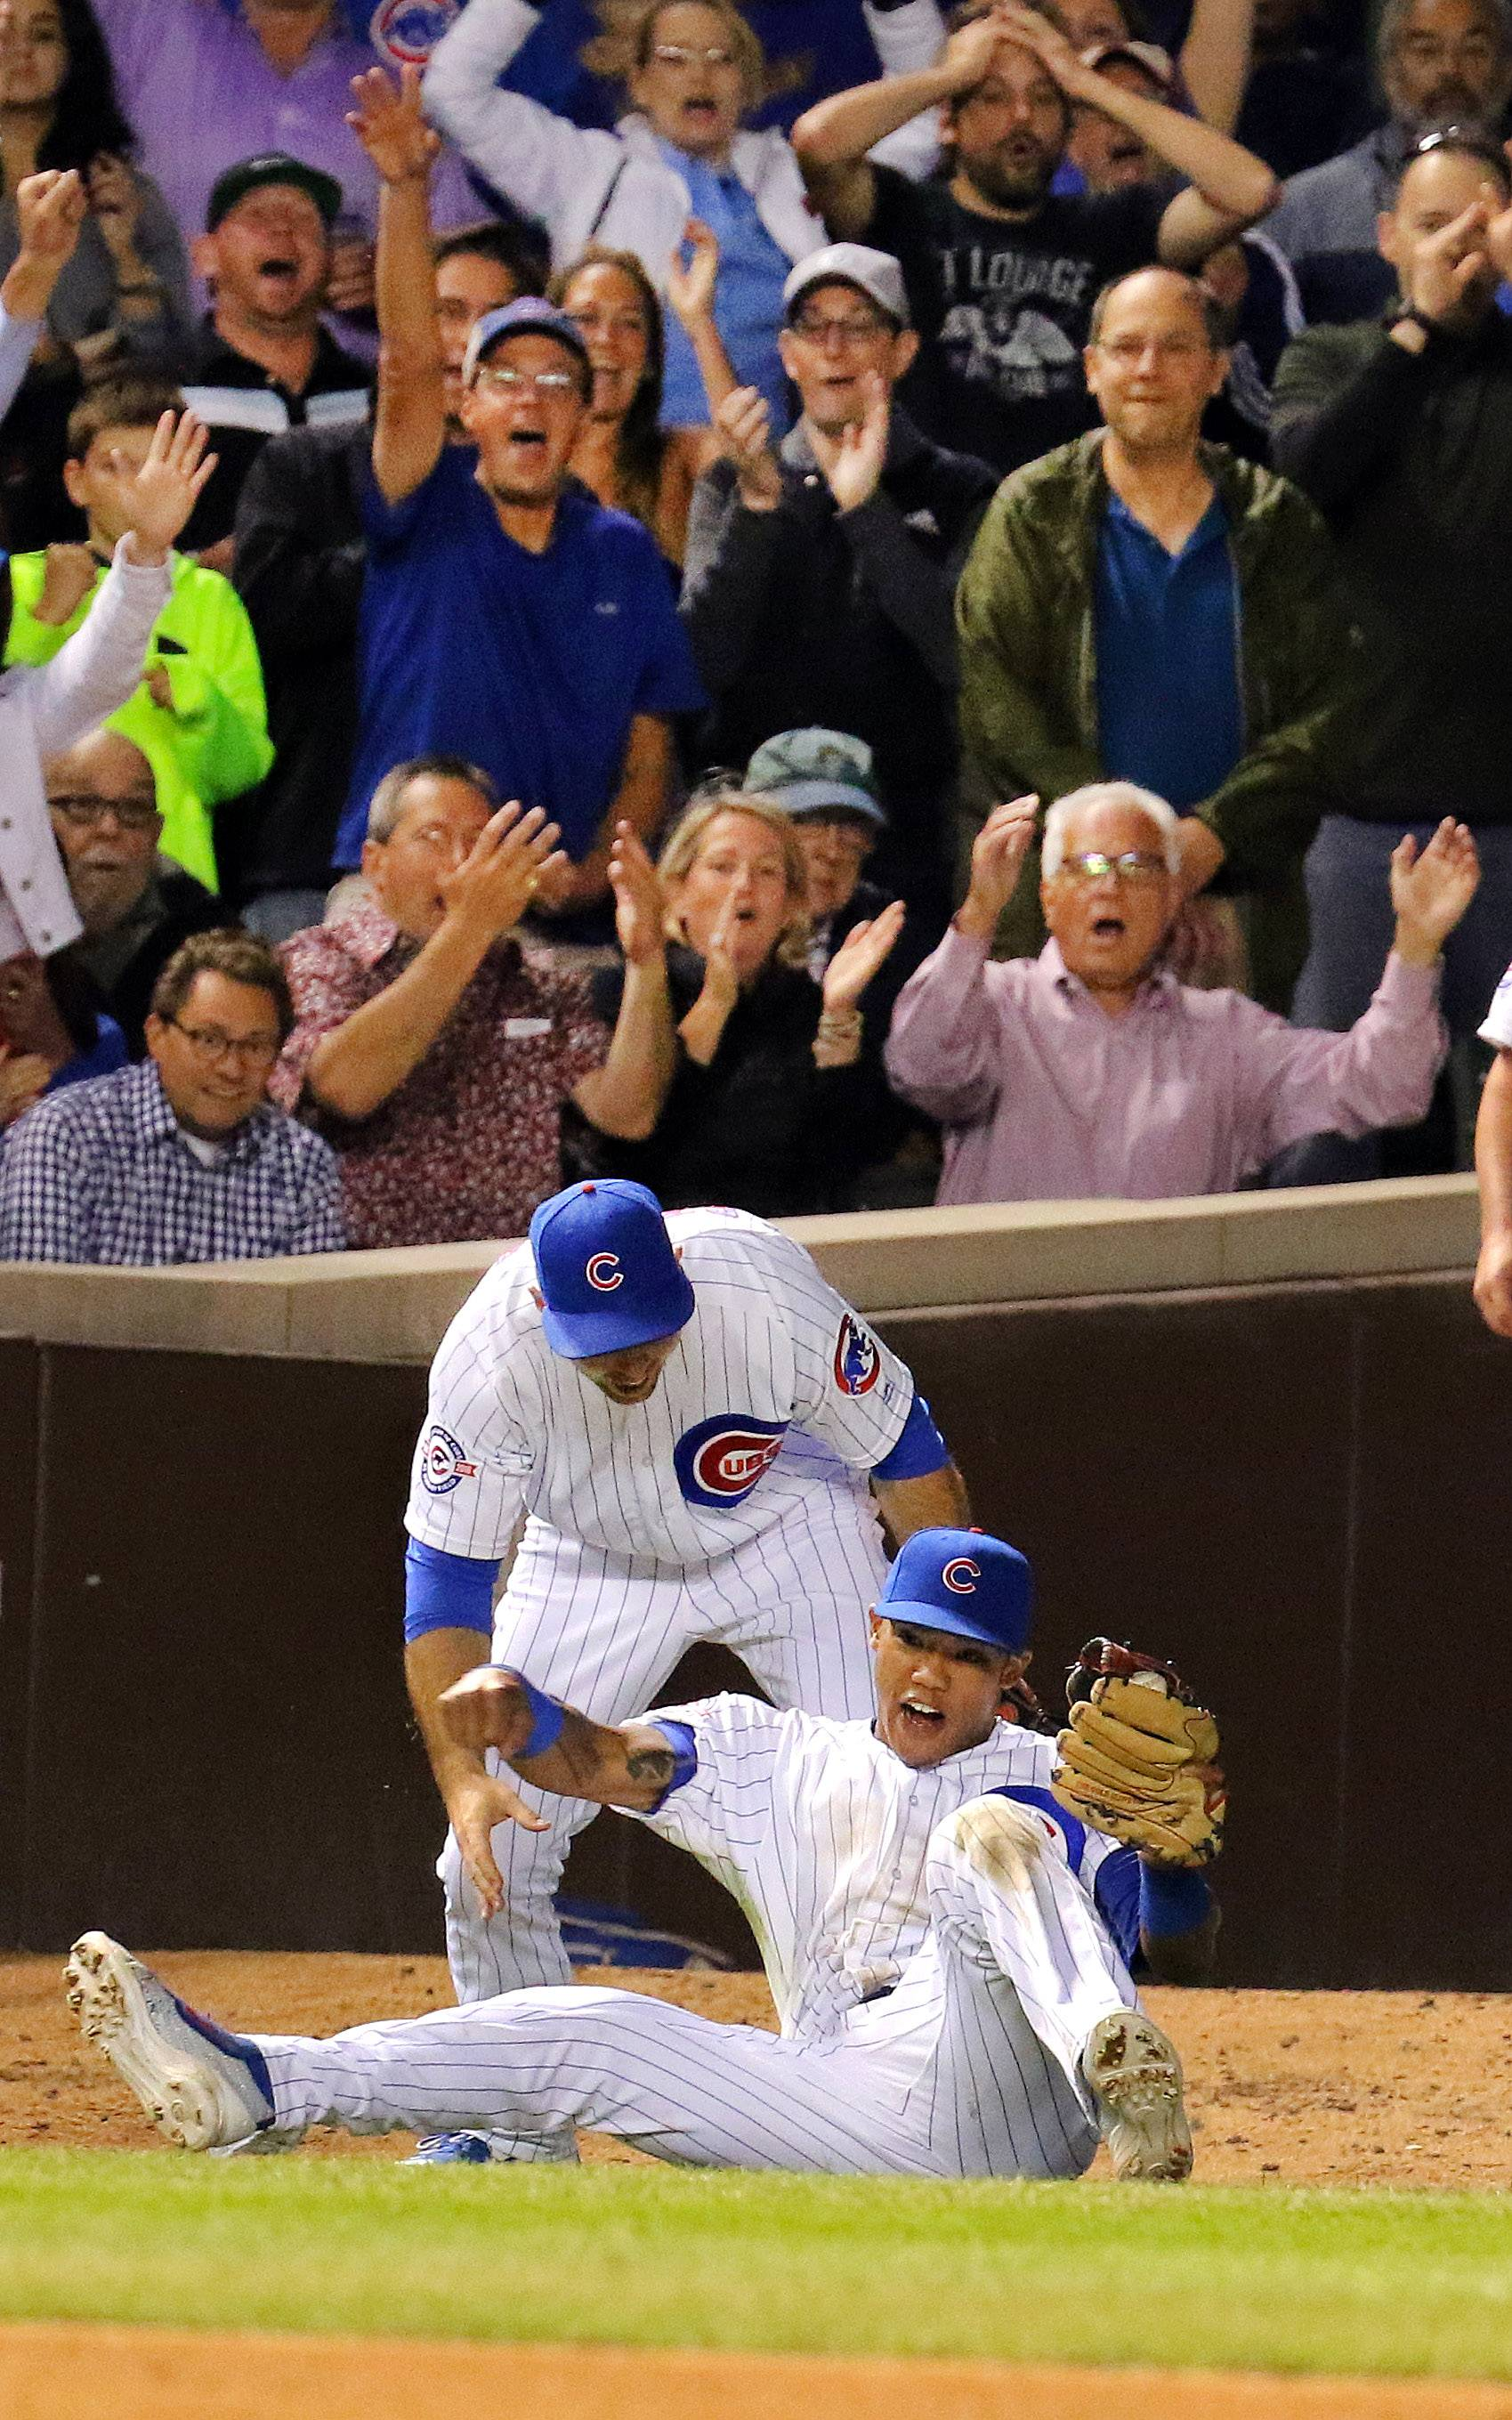 Chicago Cubs shortstop Addison Russell celebrates a catch with Chicago Cubs third baseman Kris Bryant.